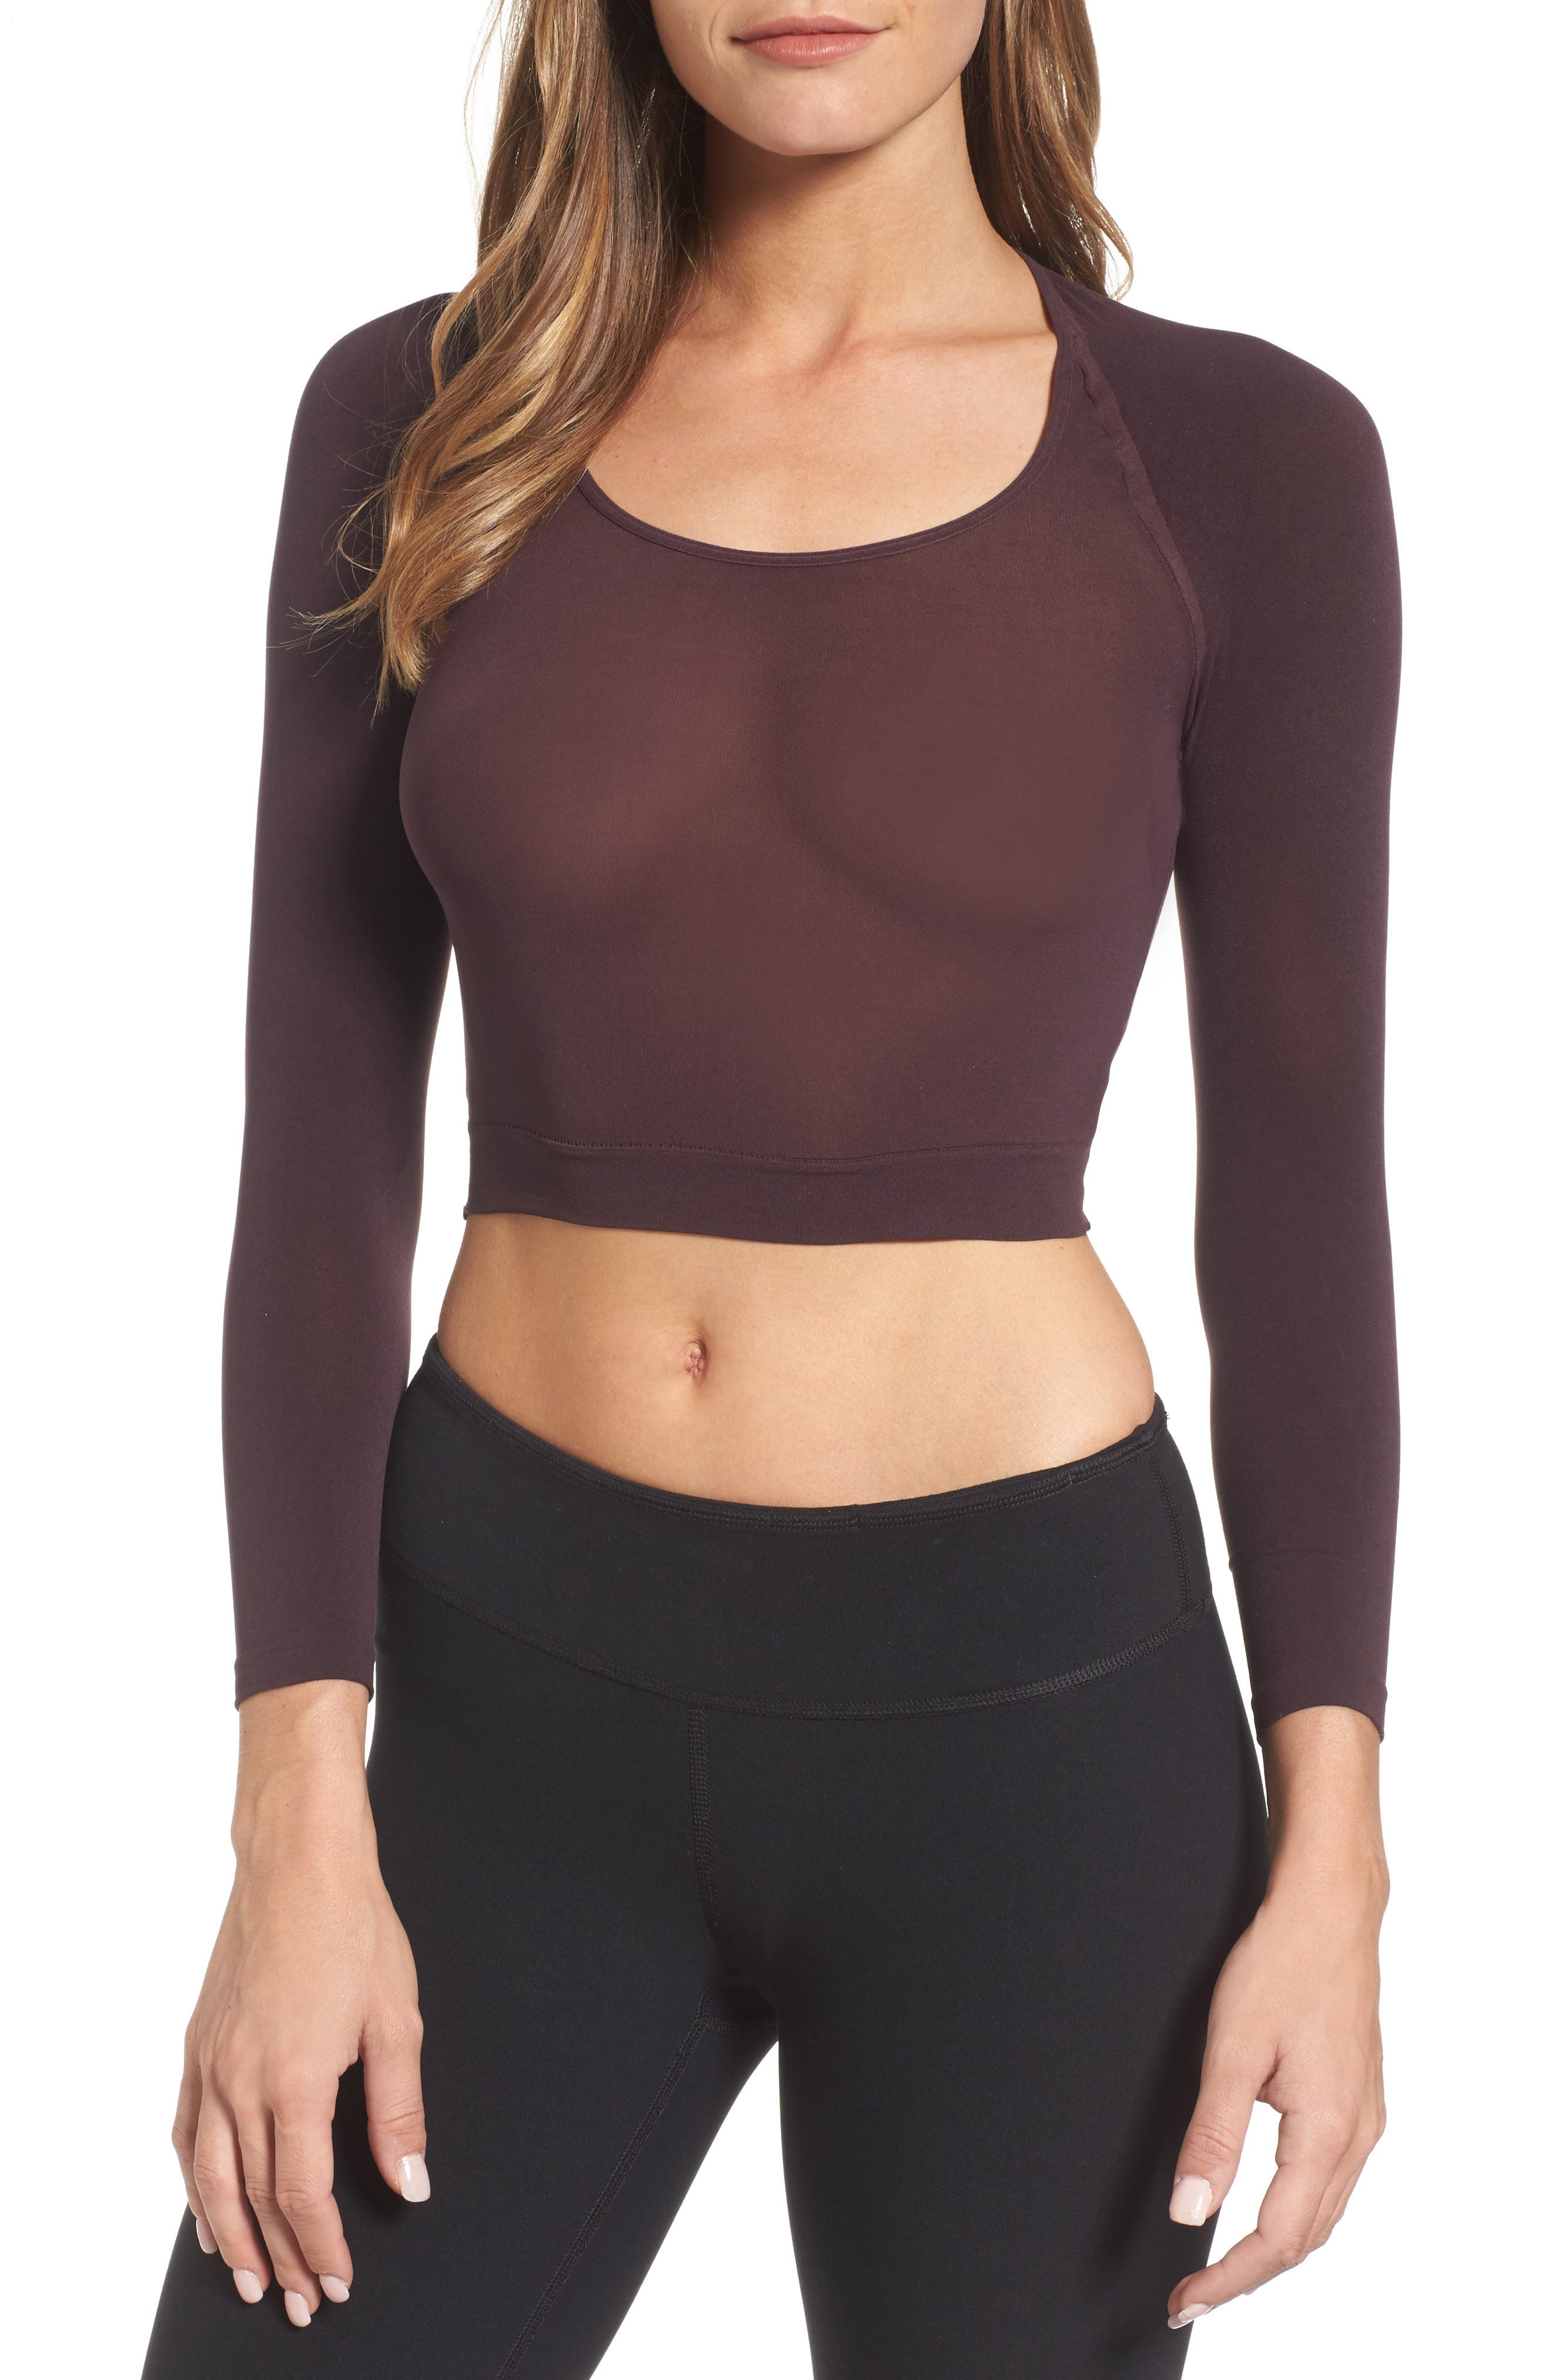 Alternate Image 1 Selected - SPANX® Arm Tights Crop Top